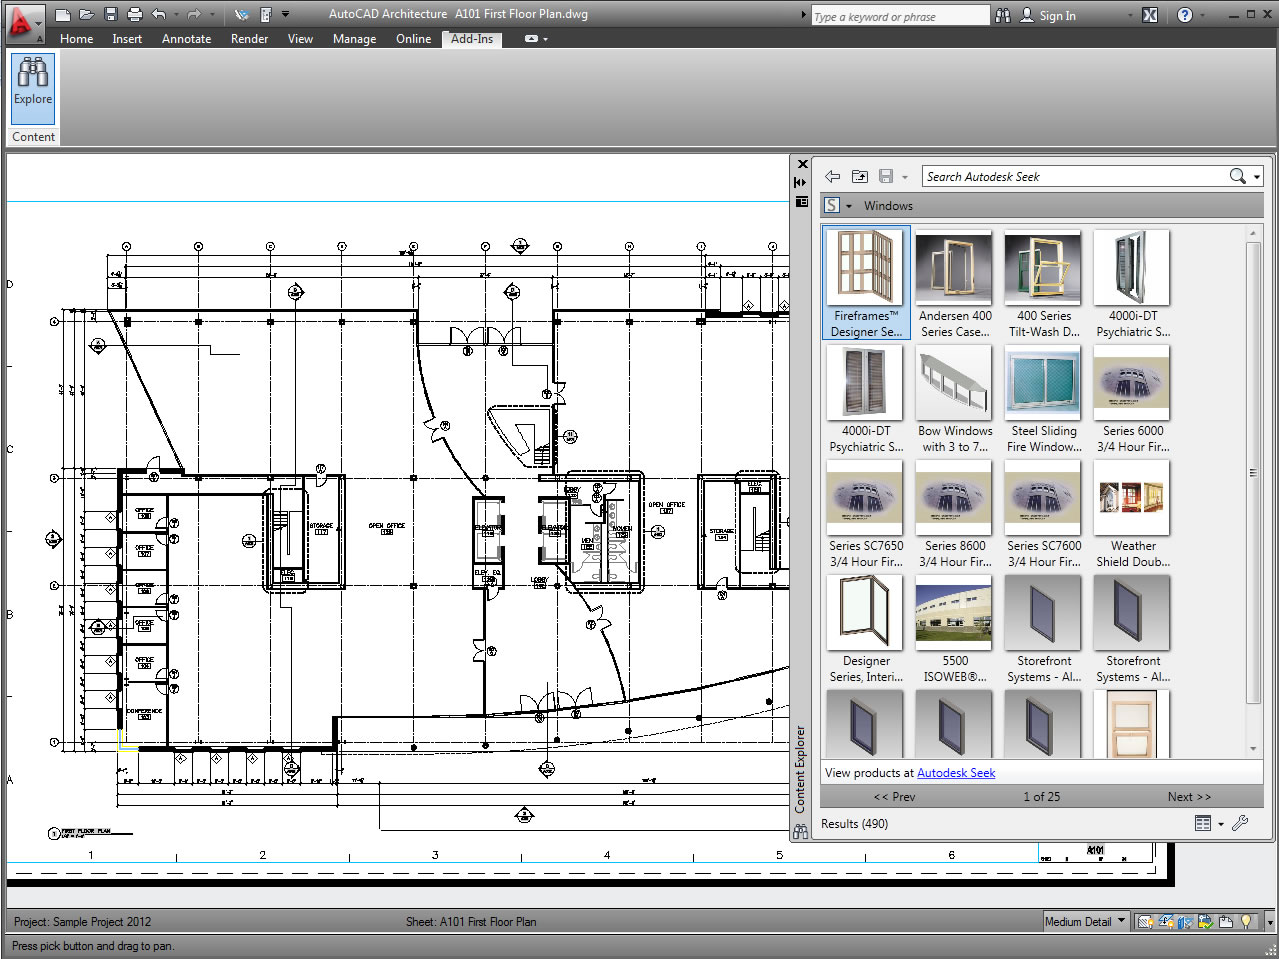 Autocad architecture 2011 free download for Online 2d drafting software